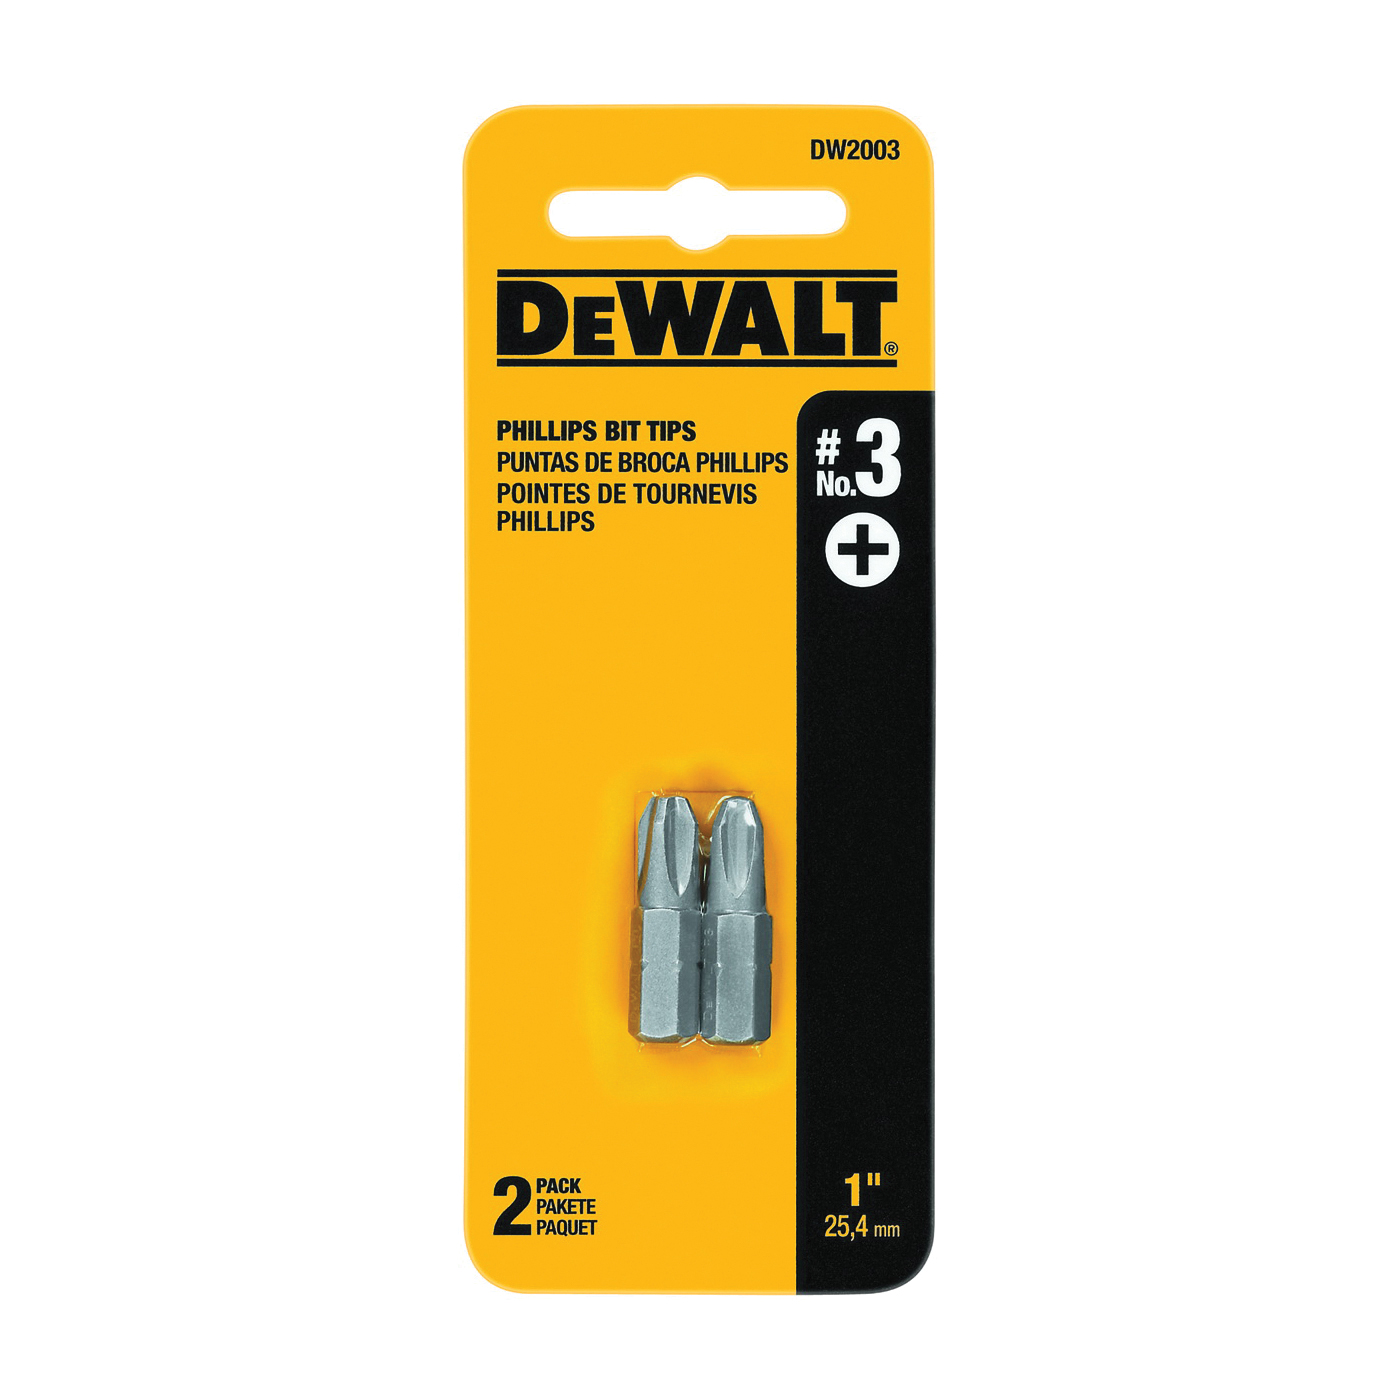 Picture of DeWALT DW2003 Insert Bit Tip, #3 Drive, Phillips Drive, 1/4 in Shank, Hex Shank, 1 in L, Tool Steel